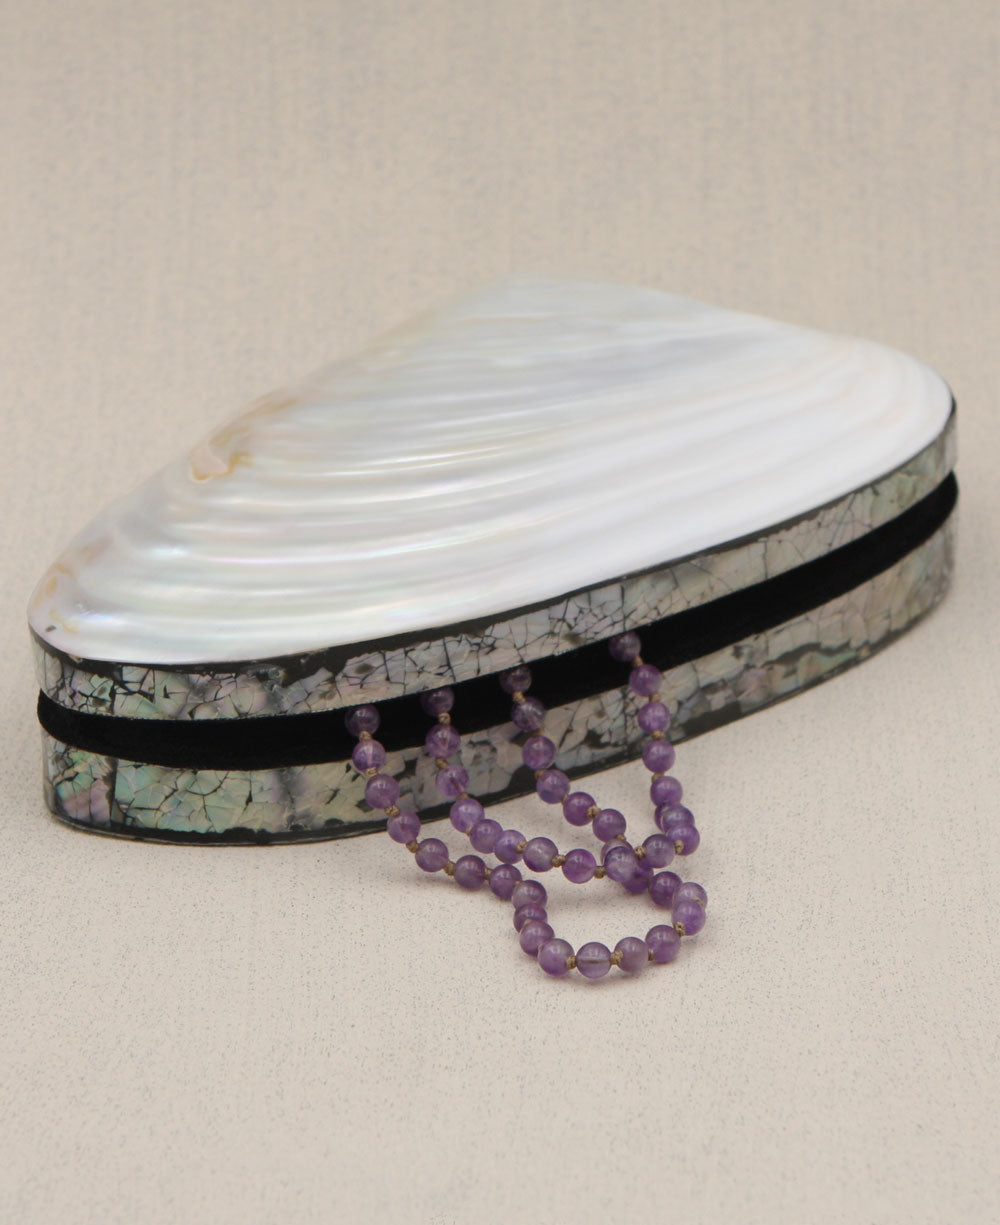 Shimmering River Shell Jewelry Box Cultural Elements